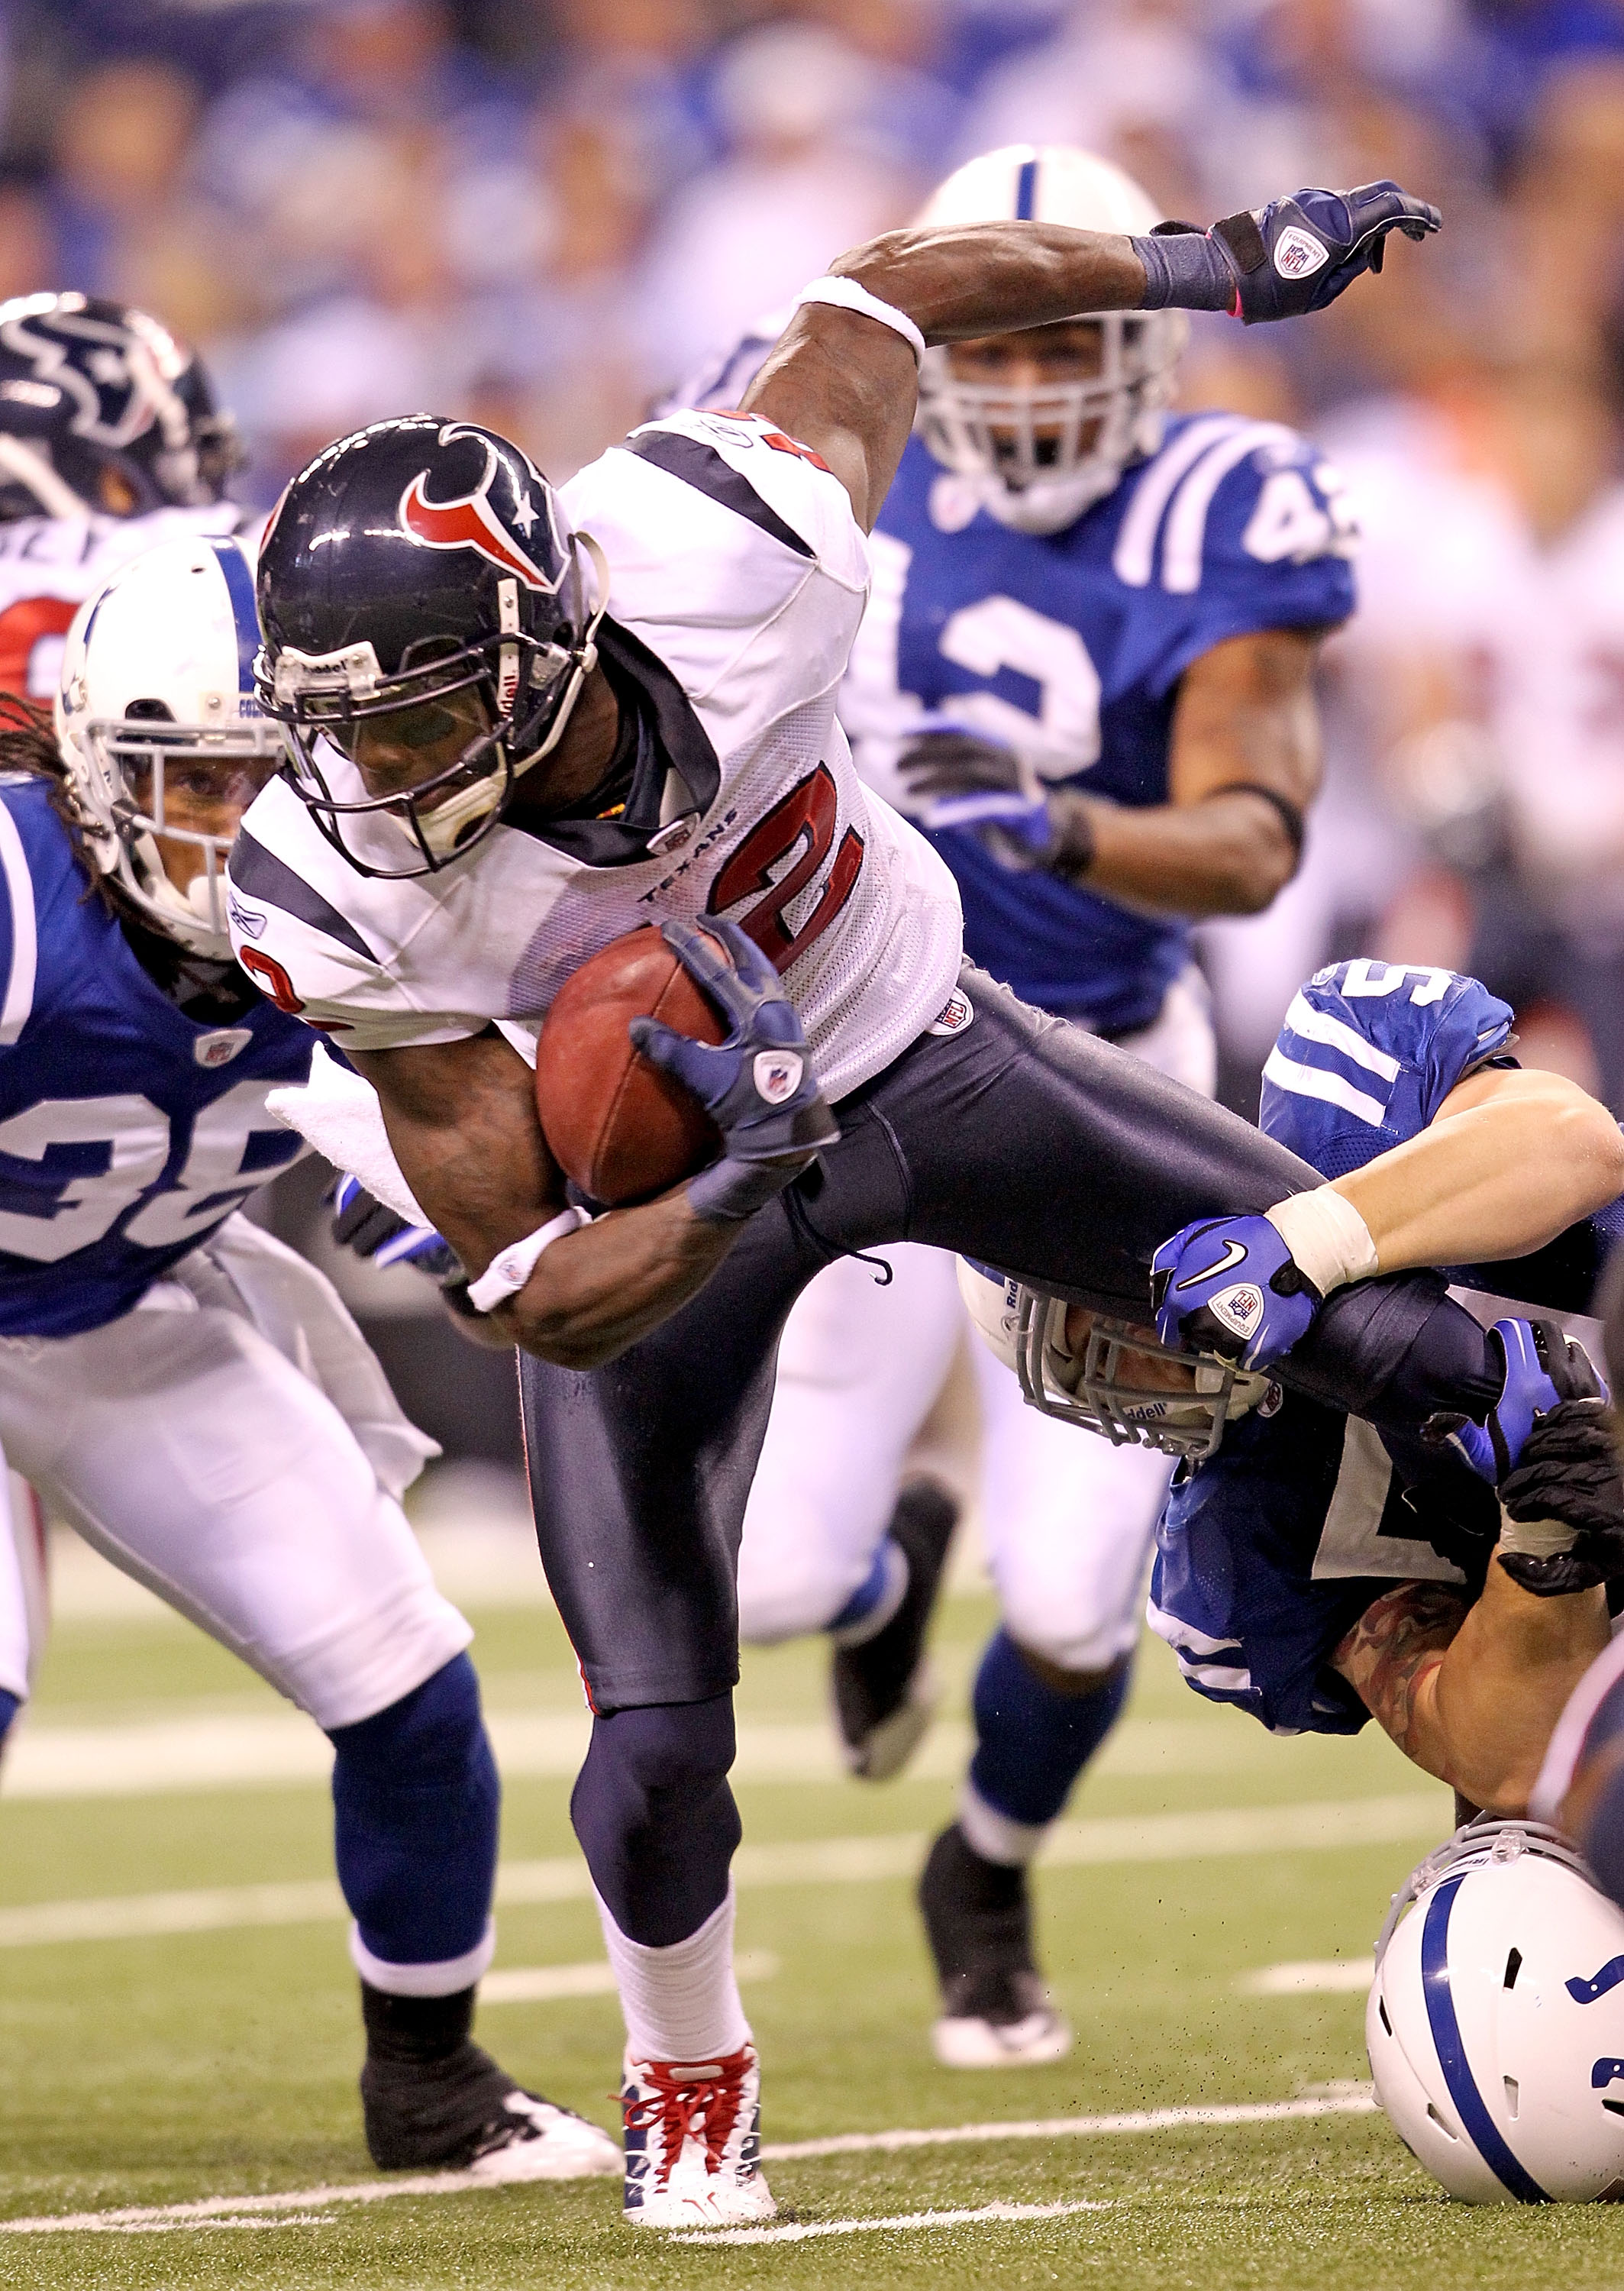 INDIANAPOLIS - NOVEMBER 01:  Jacoby Jones #12 of Houston Texans is tackled during the NFL game against the Indianapolis Colts at Lucas Oil Stadium on November 1, 2010 in Indianapolis, Indiana.  (Photo by Andy Lyons/Getty Images)